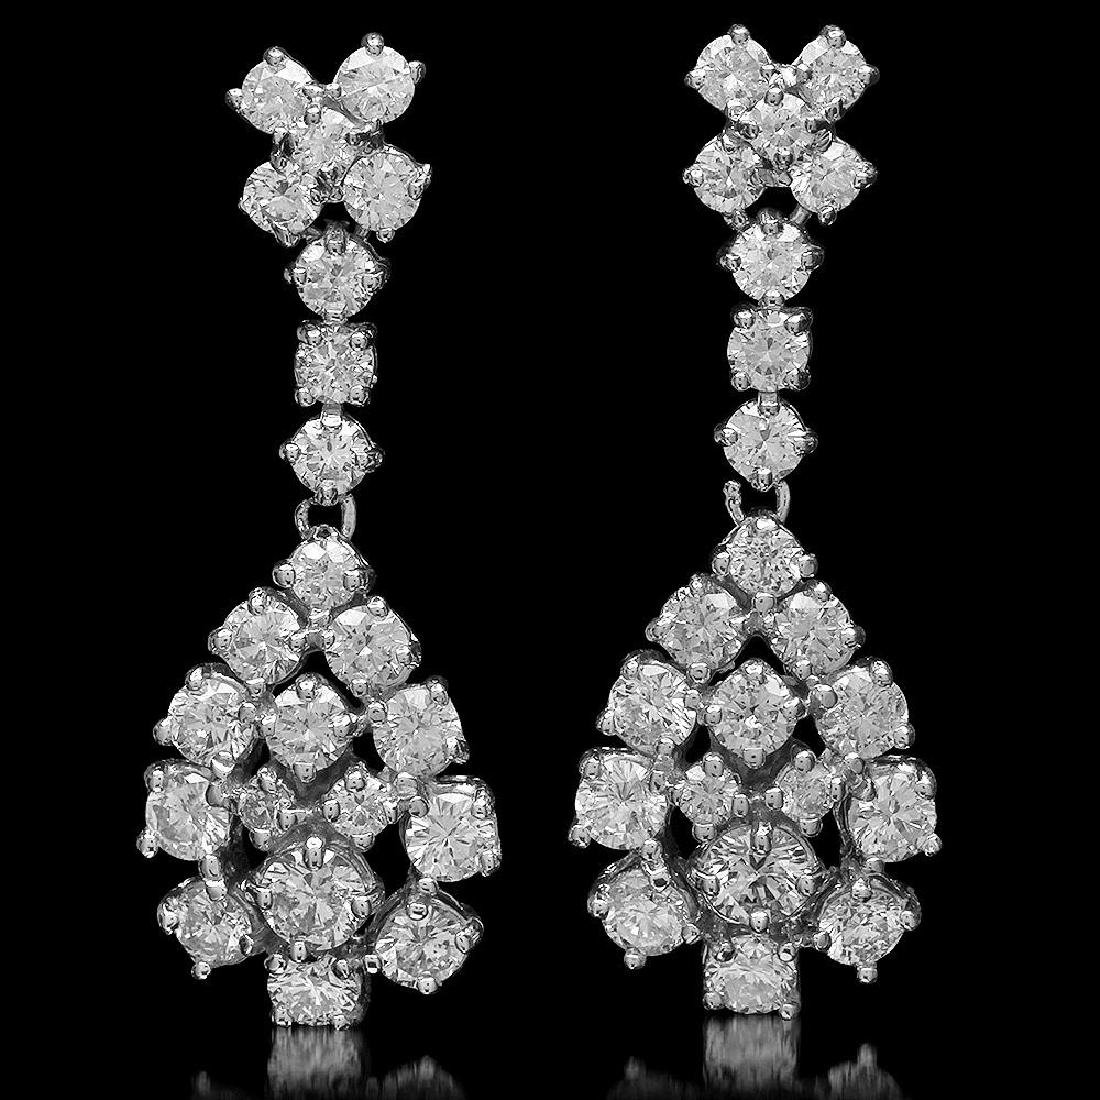 14K Gold 2.97ct Diamond Earrings